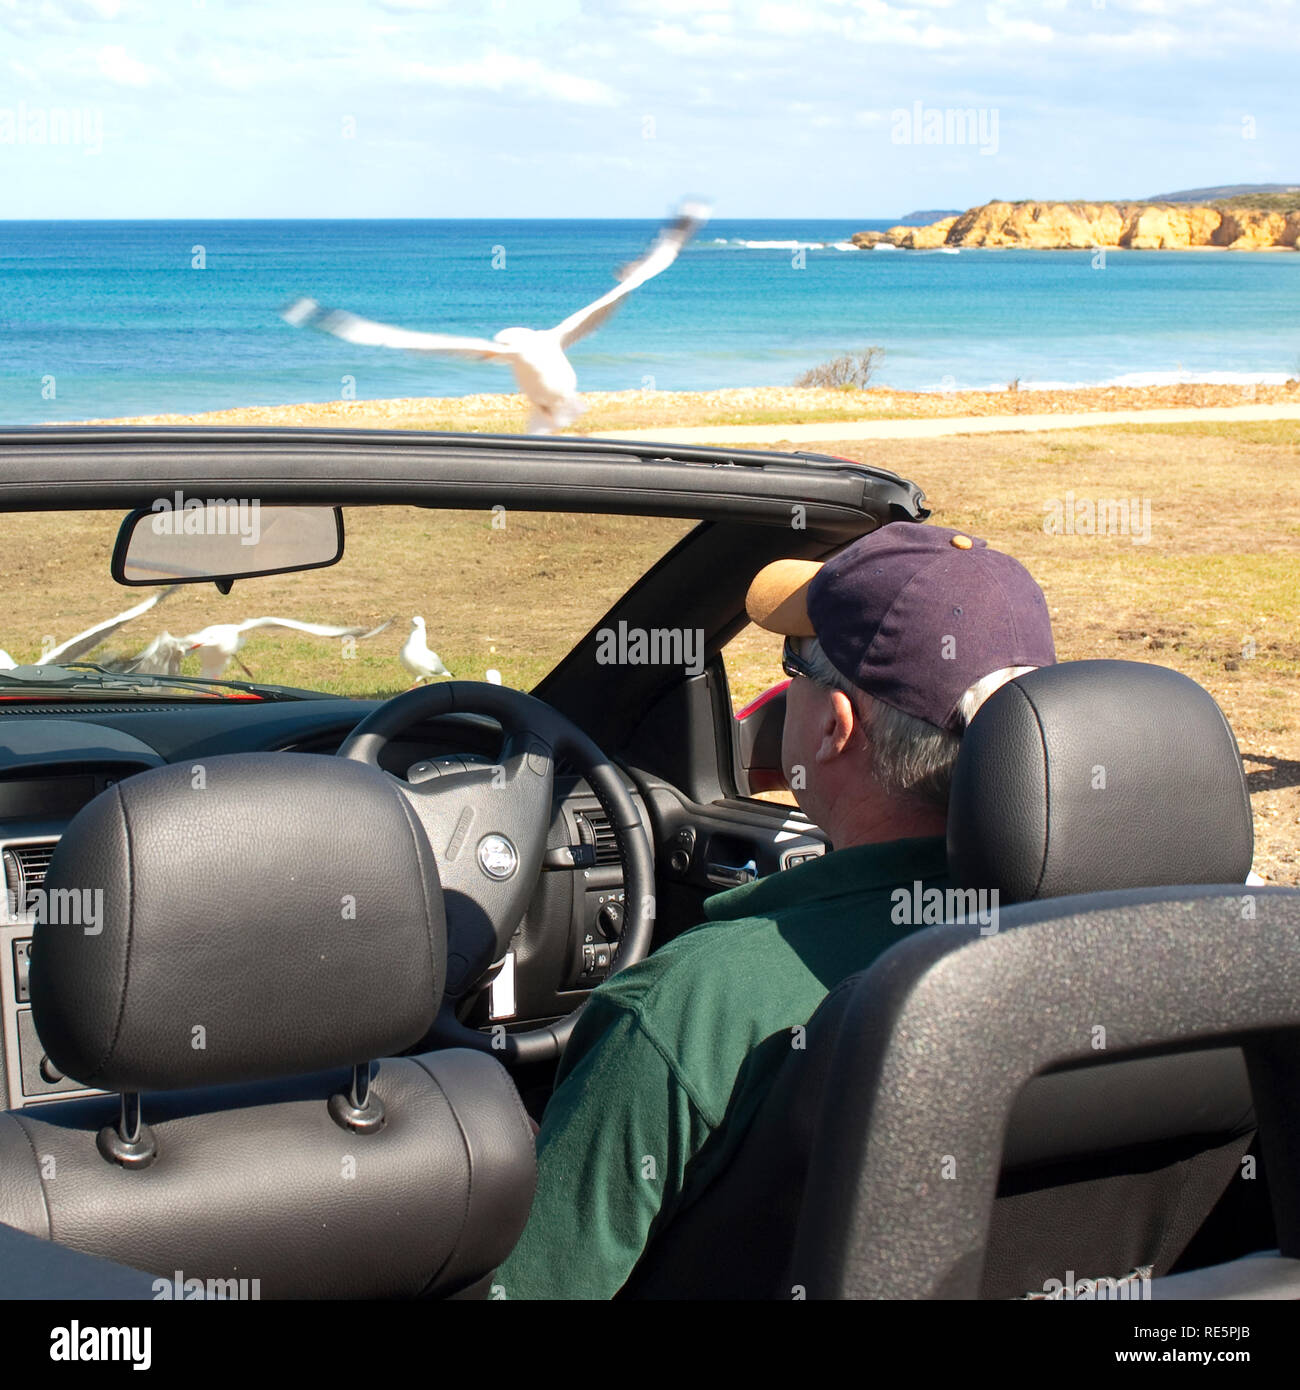 Man sitting in a car watching the beach - Stock Image